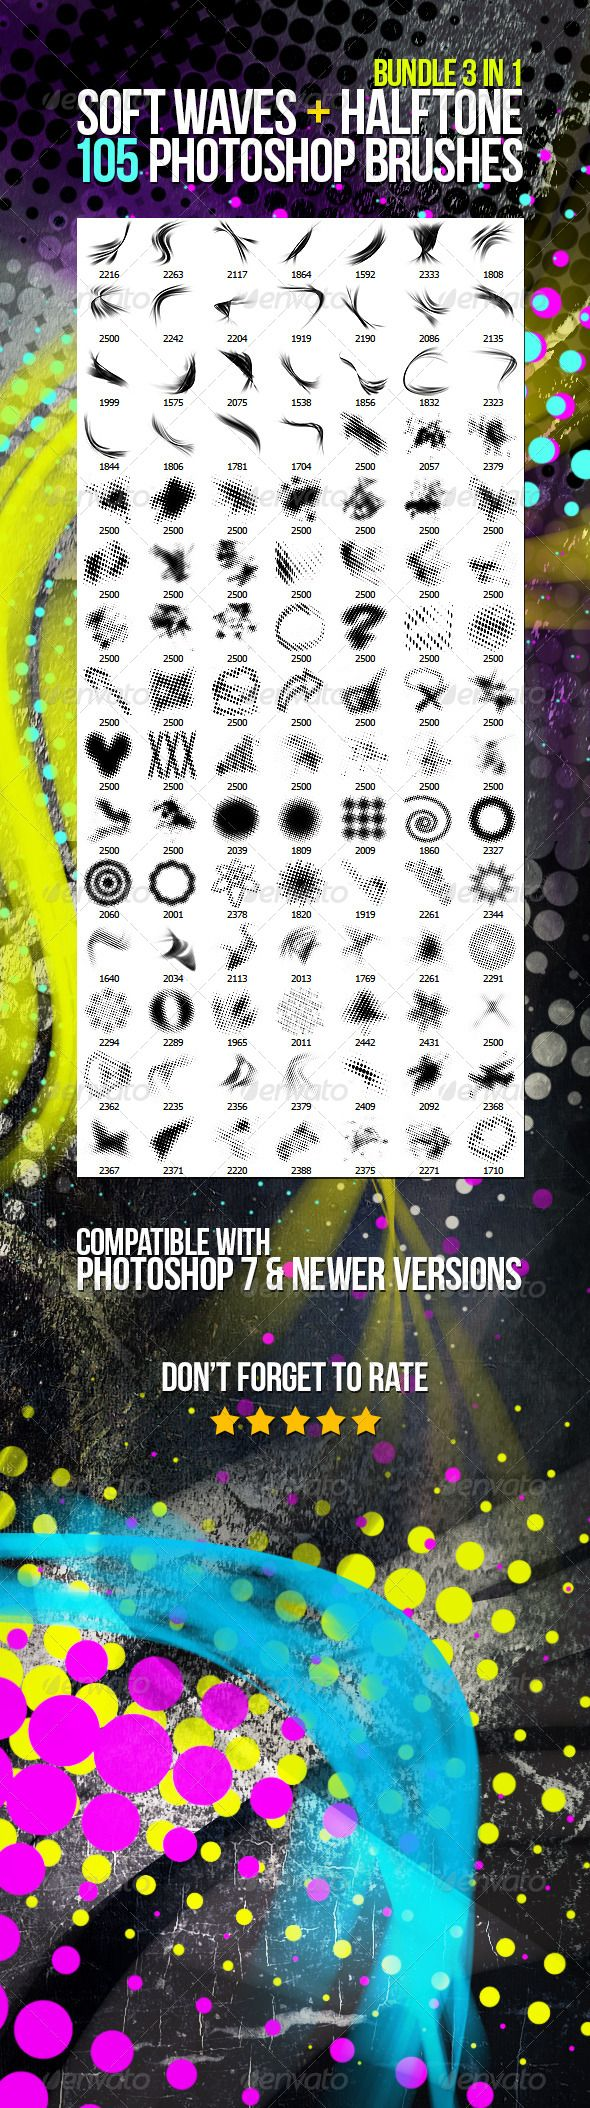 105 Soft Waves + Halftone Photoshop Brushes Bundle #GraphicRiver 105 high resolution brushes (resolution up to 2500px) for Adobe Photoshop – 25 abstract soft